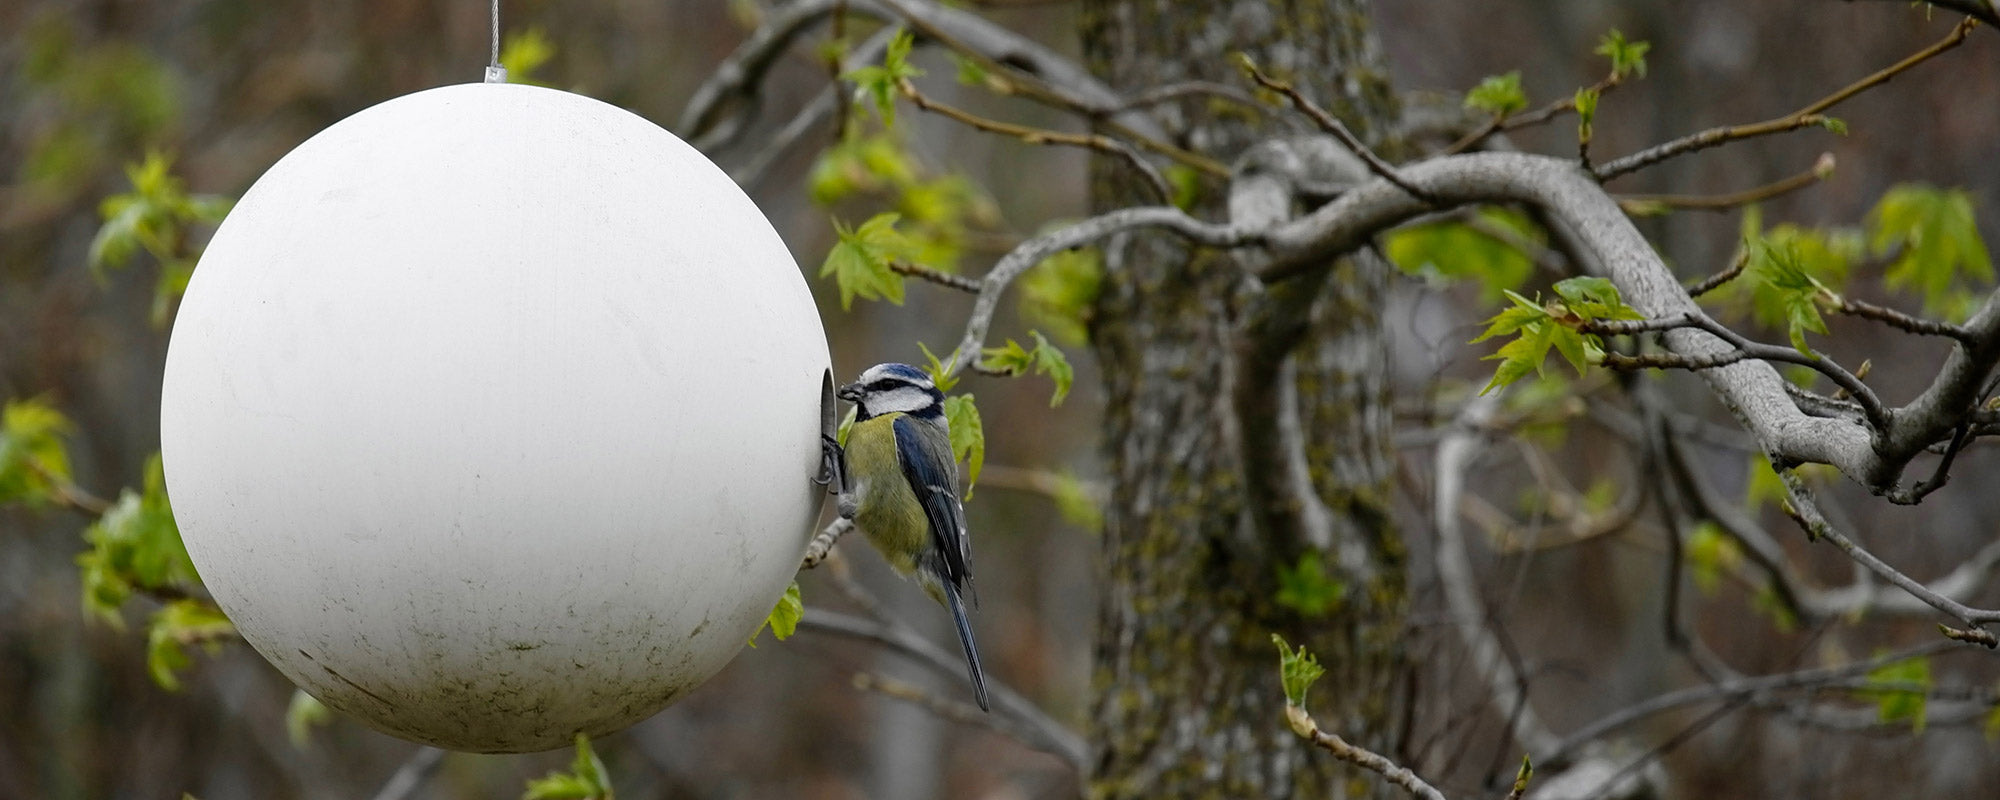 Blue tit on birdball birdhouse nesting birds